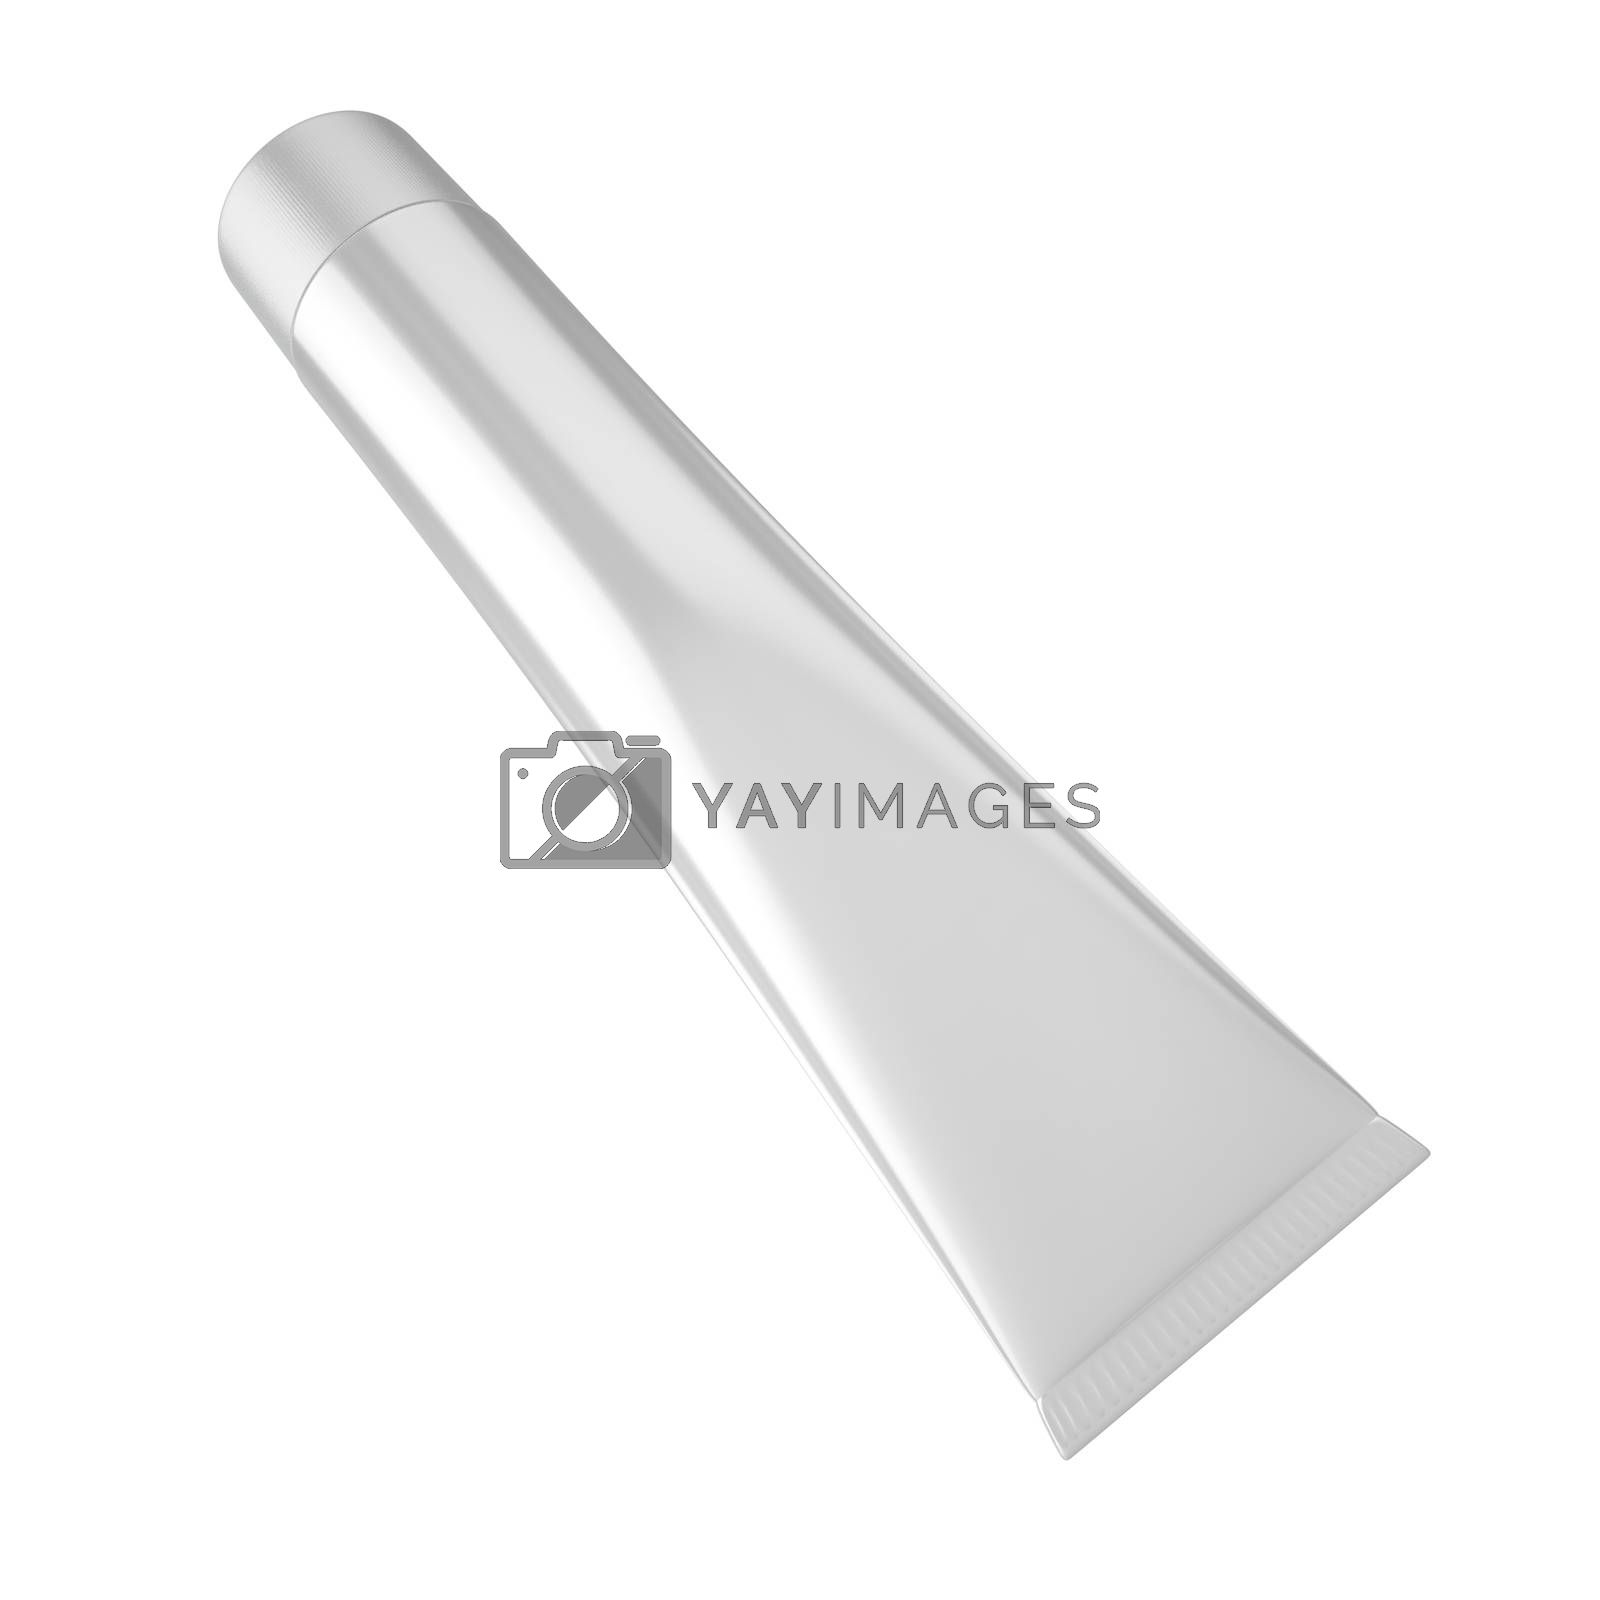 Toothpaste Tube for Cosmetic Package Mock up. Easa place your design on this blank surface.